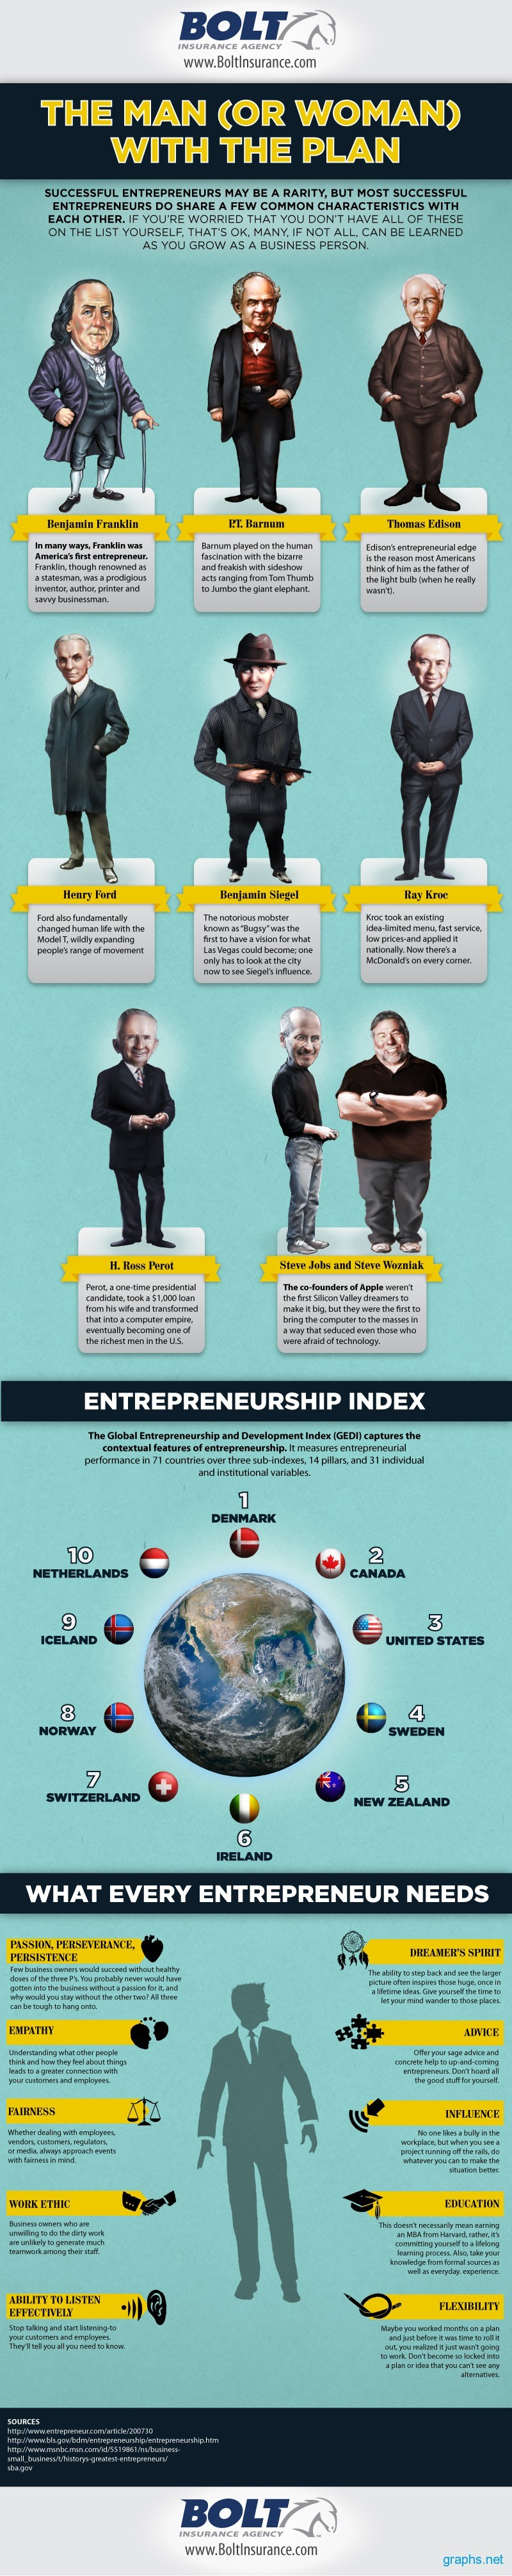 Successful Entrepreneurs and Their Characteristics